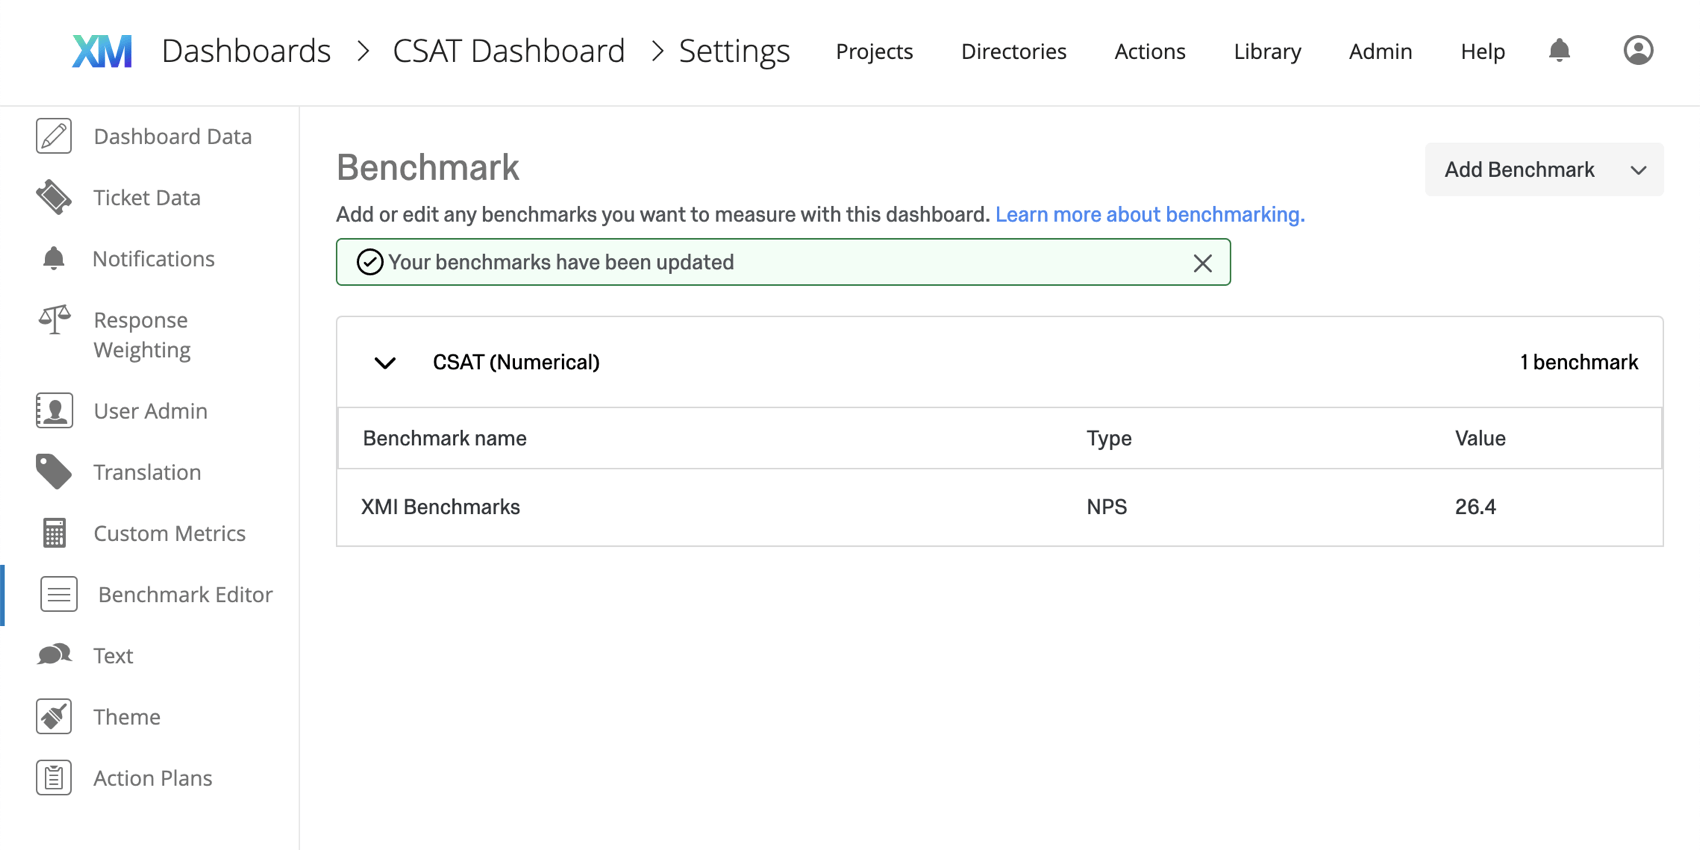 Green banner appears along the top to show you've successfully updated benchmarks